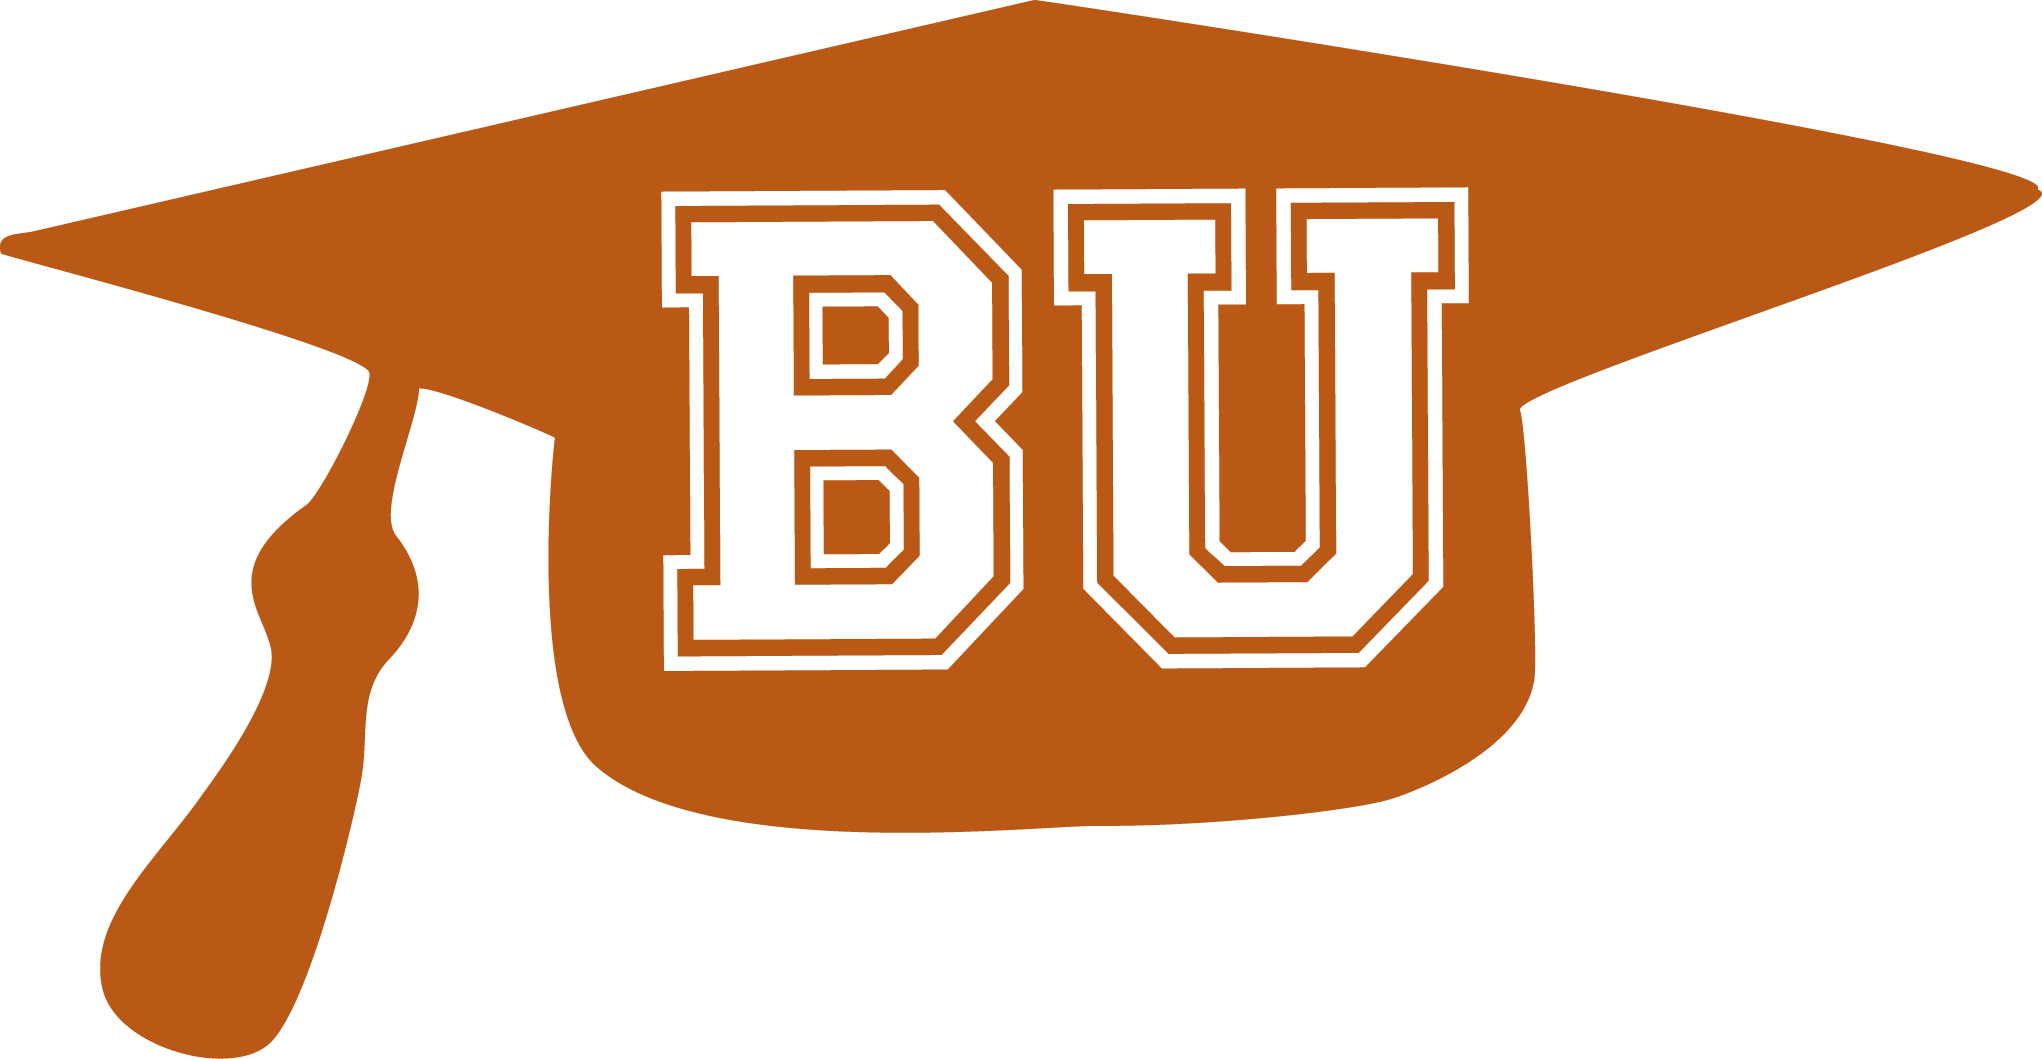 Take a special Fall 2016 BU class on and help build Better Block.